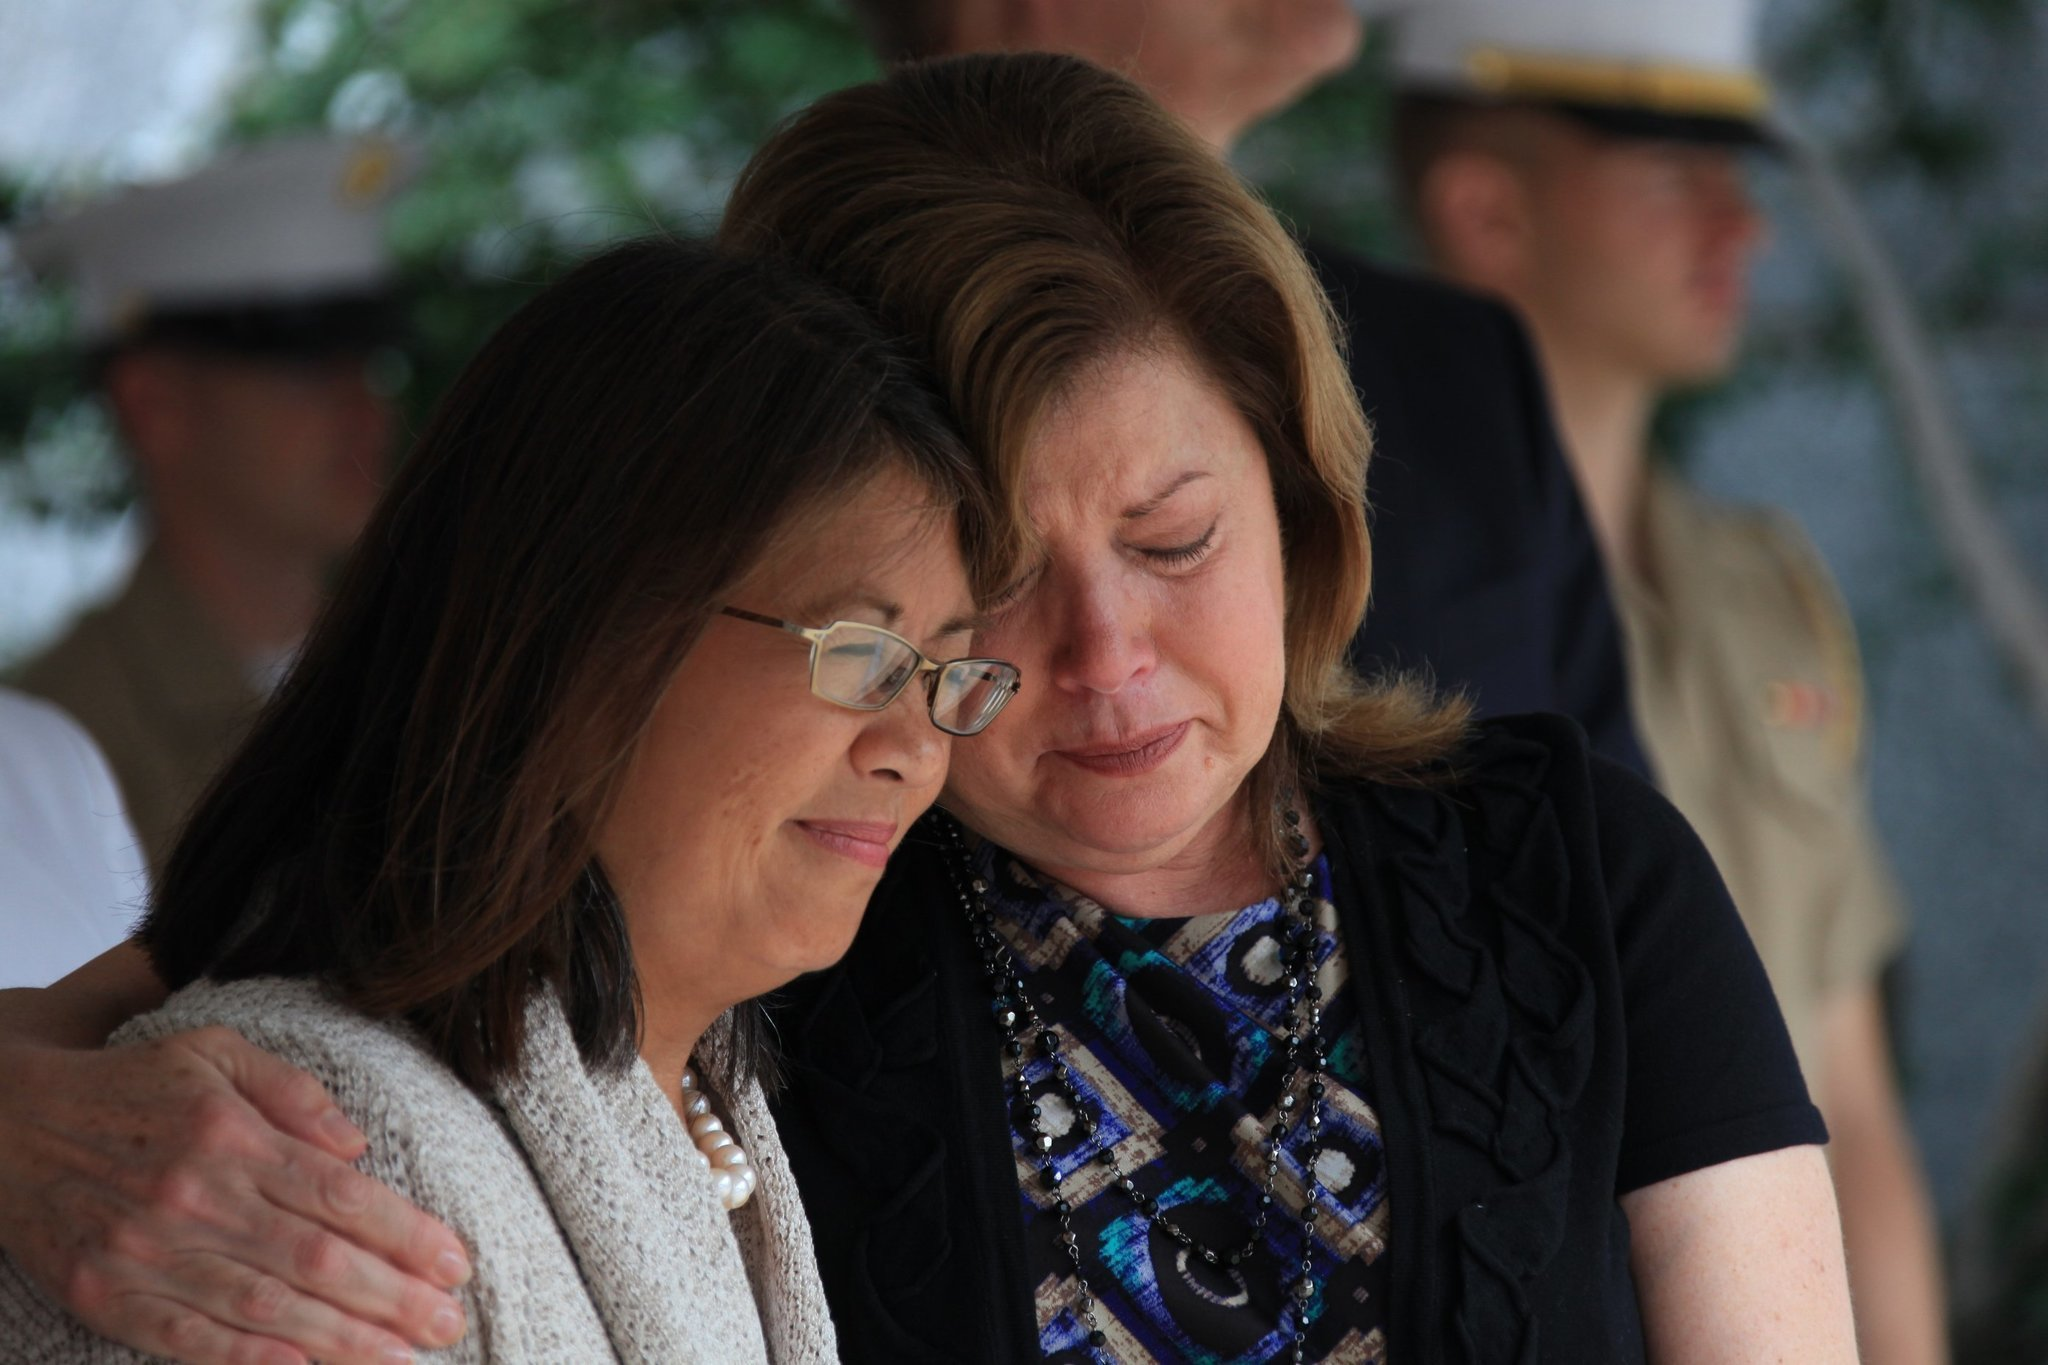 General's fallen son inspires mother - The San Diego Union ...